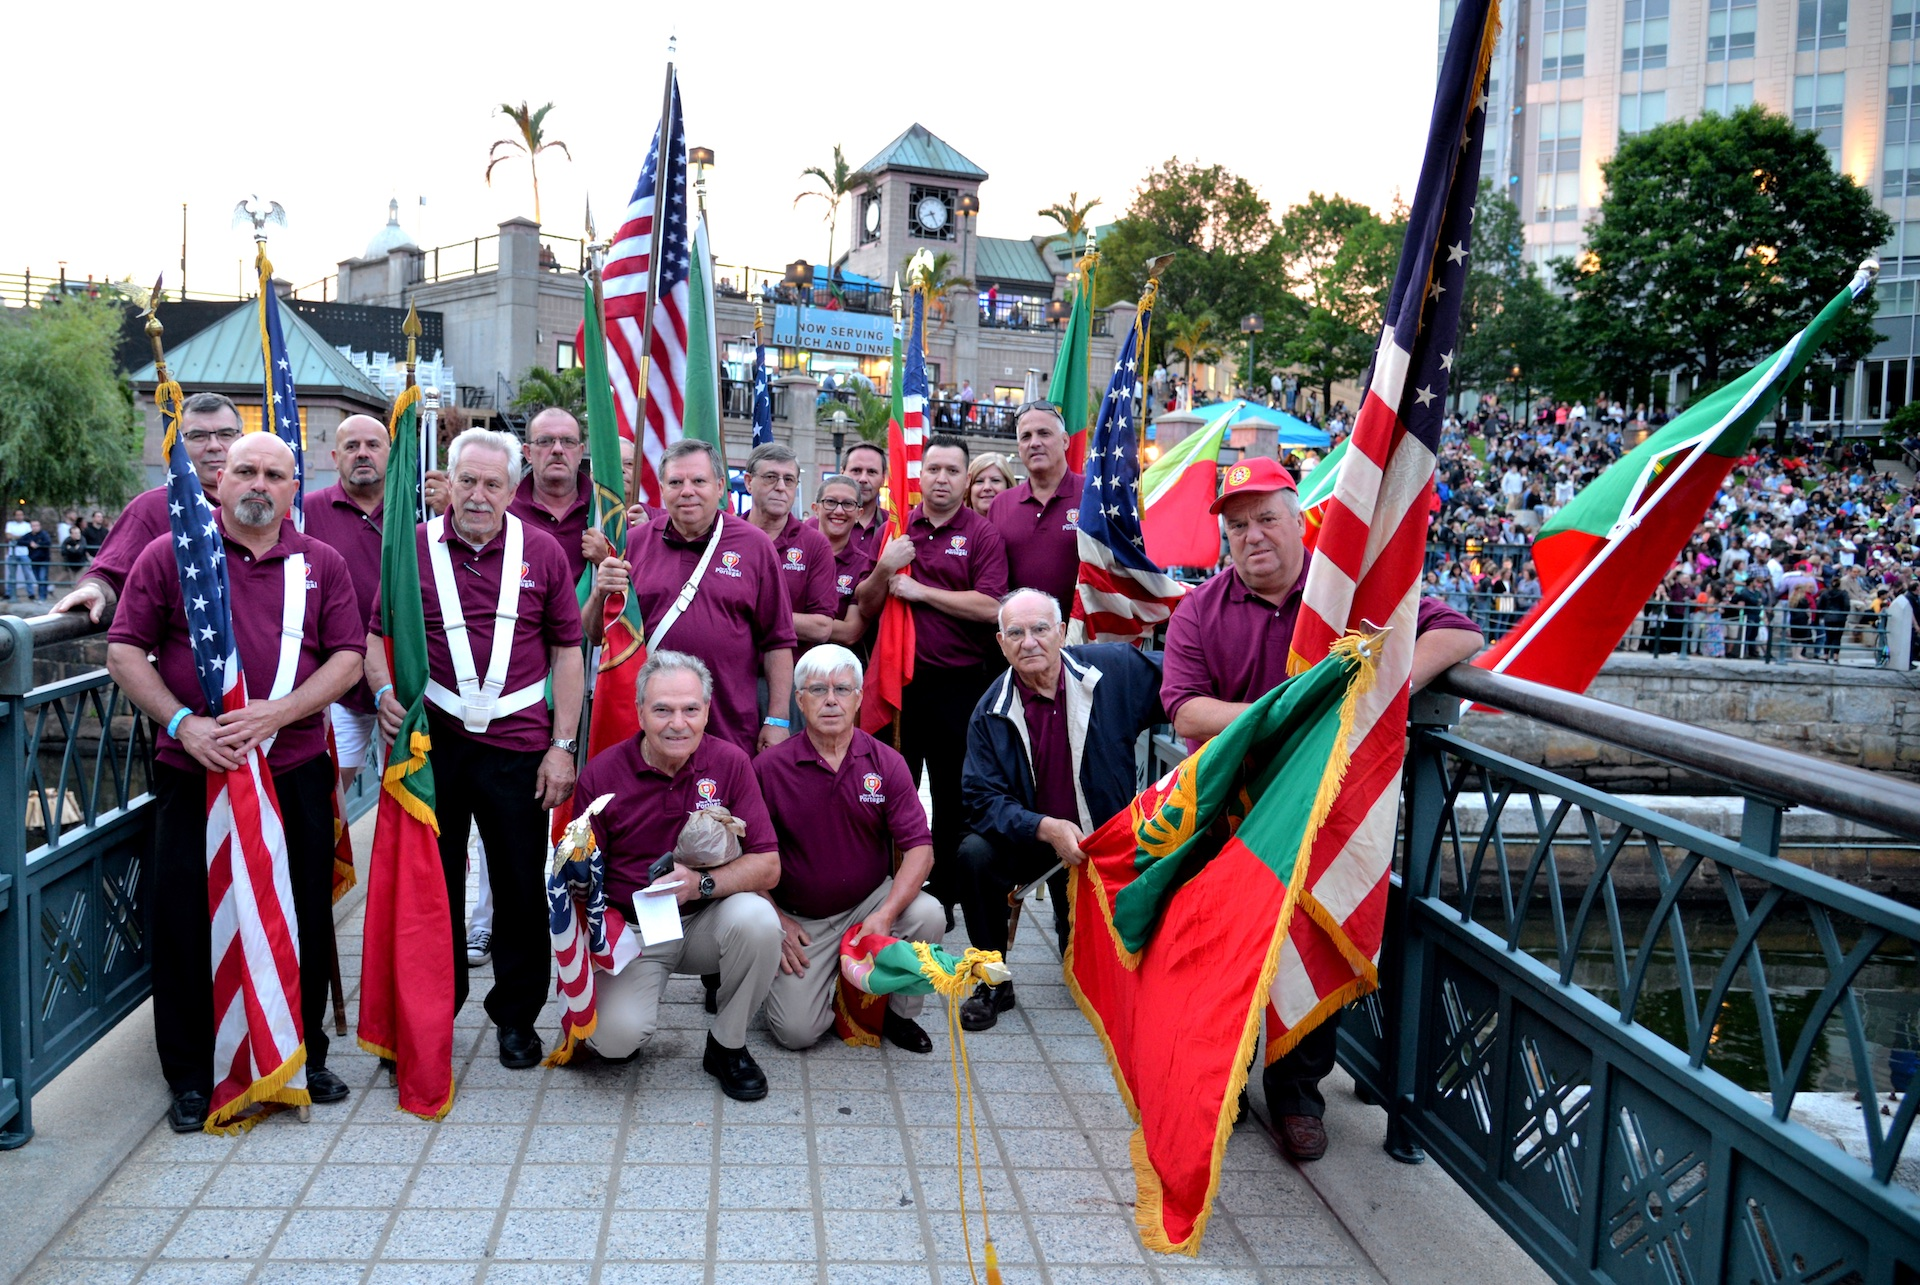 flag-bearers-for-ri-day-of-portugal_41893862735_o